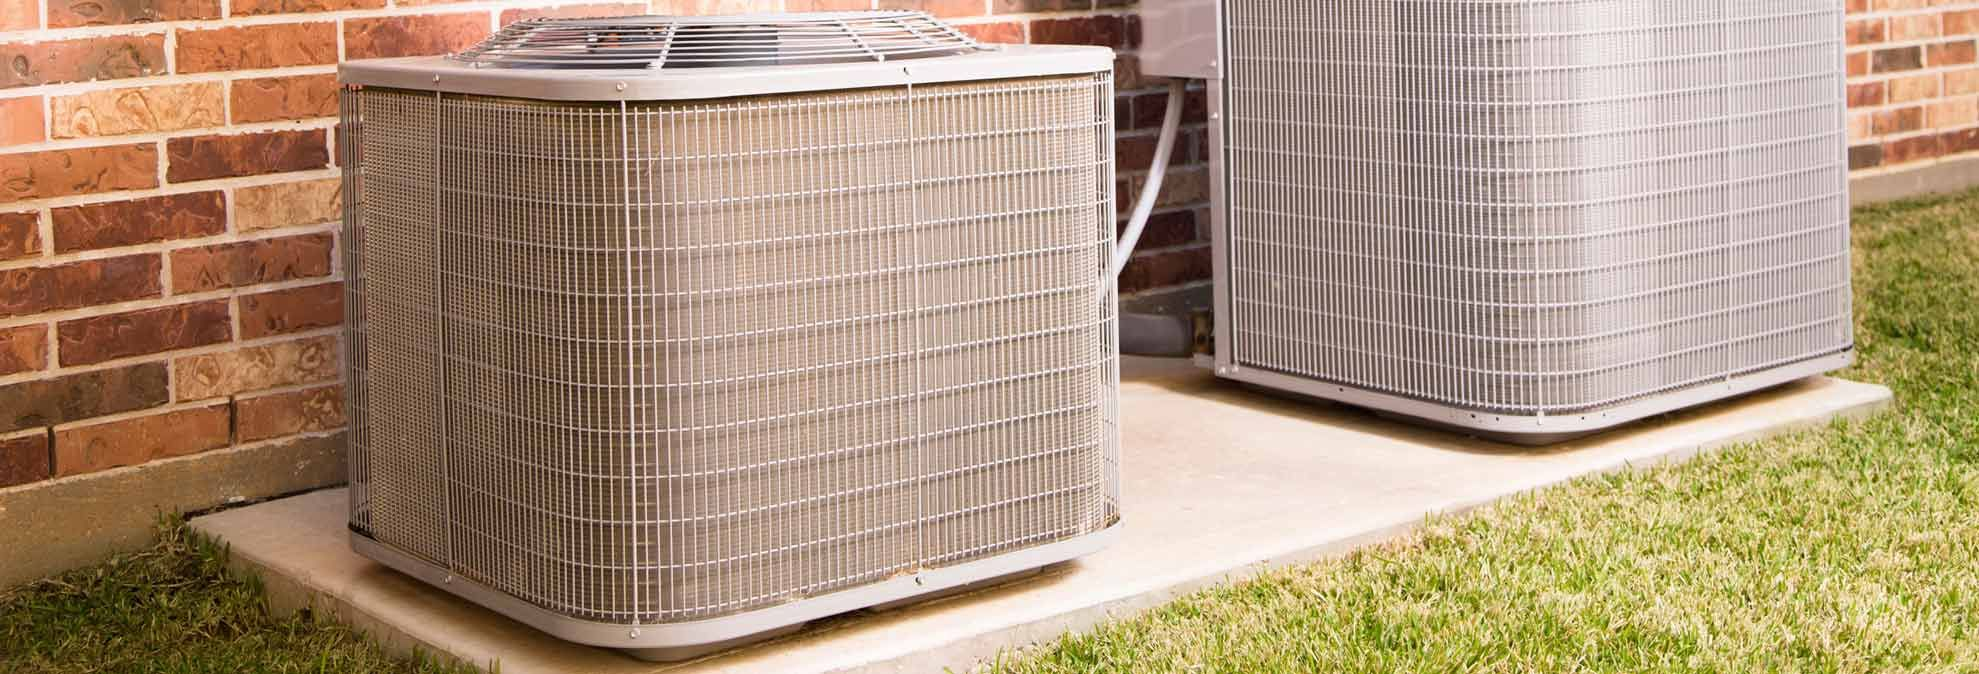 Central Air Conditioning Buying Guide in 2020 Central